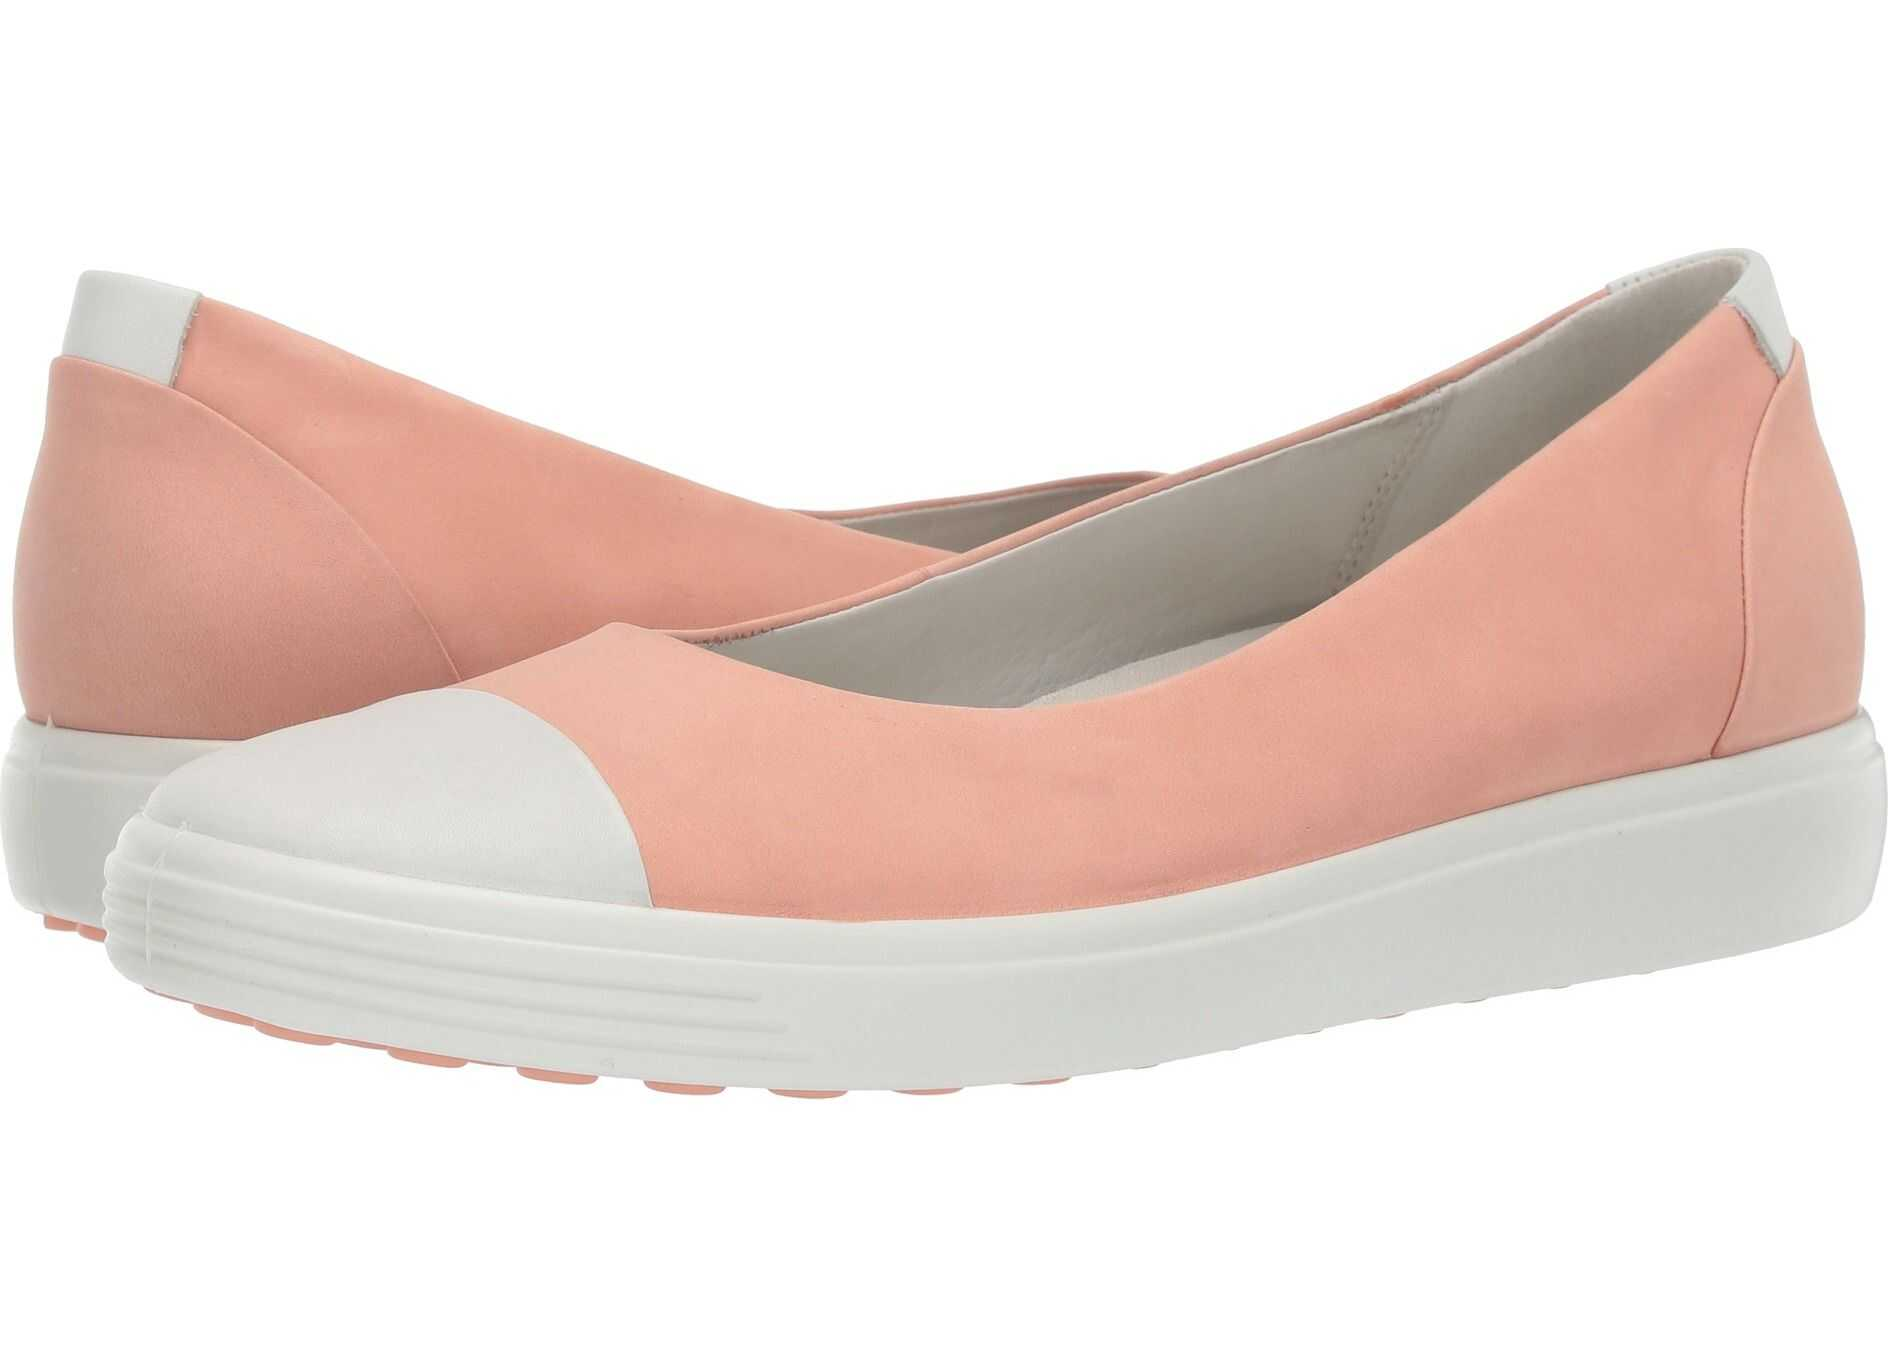 ECCO Soft 7 Ballerina White/Muted Clay Cow Leather/Cow Nubuck